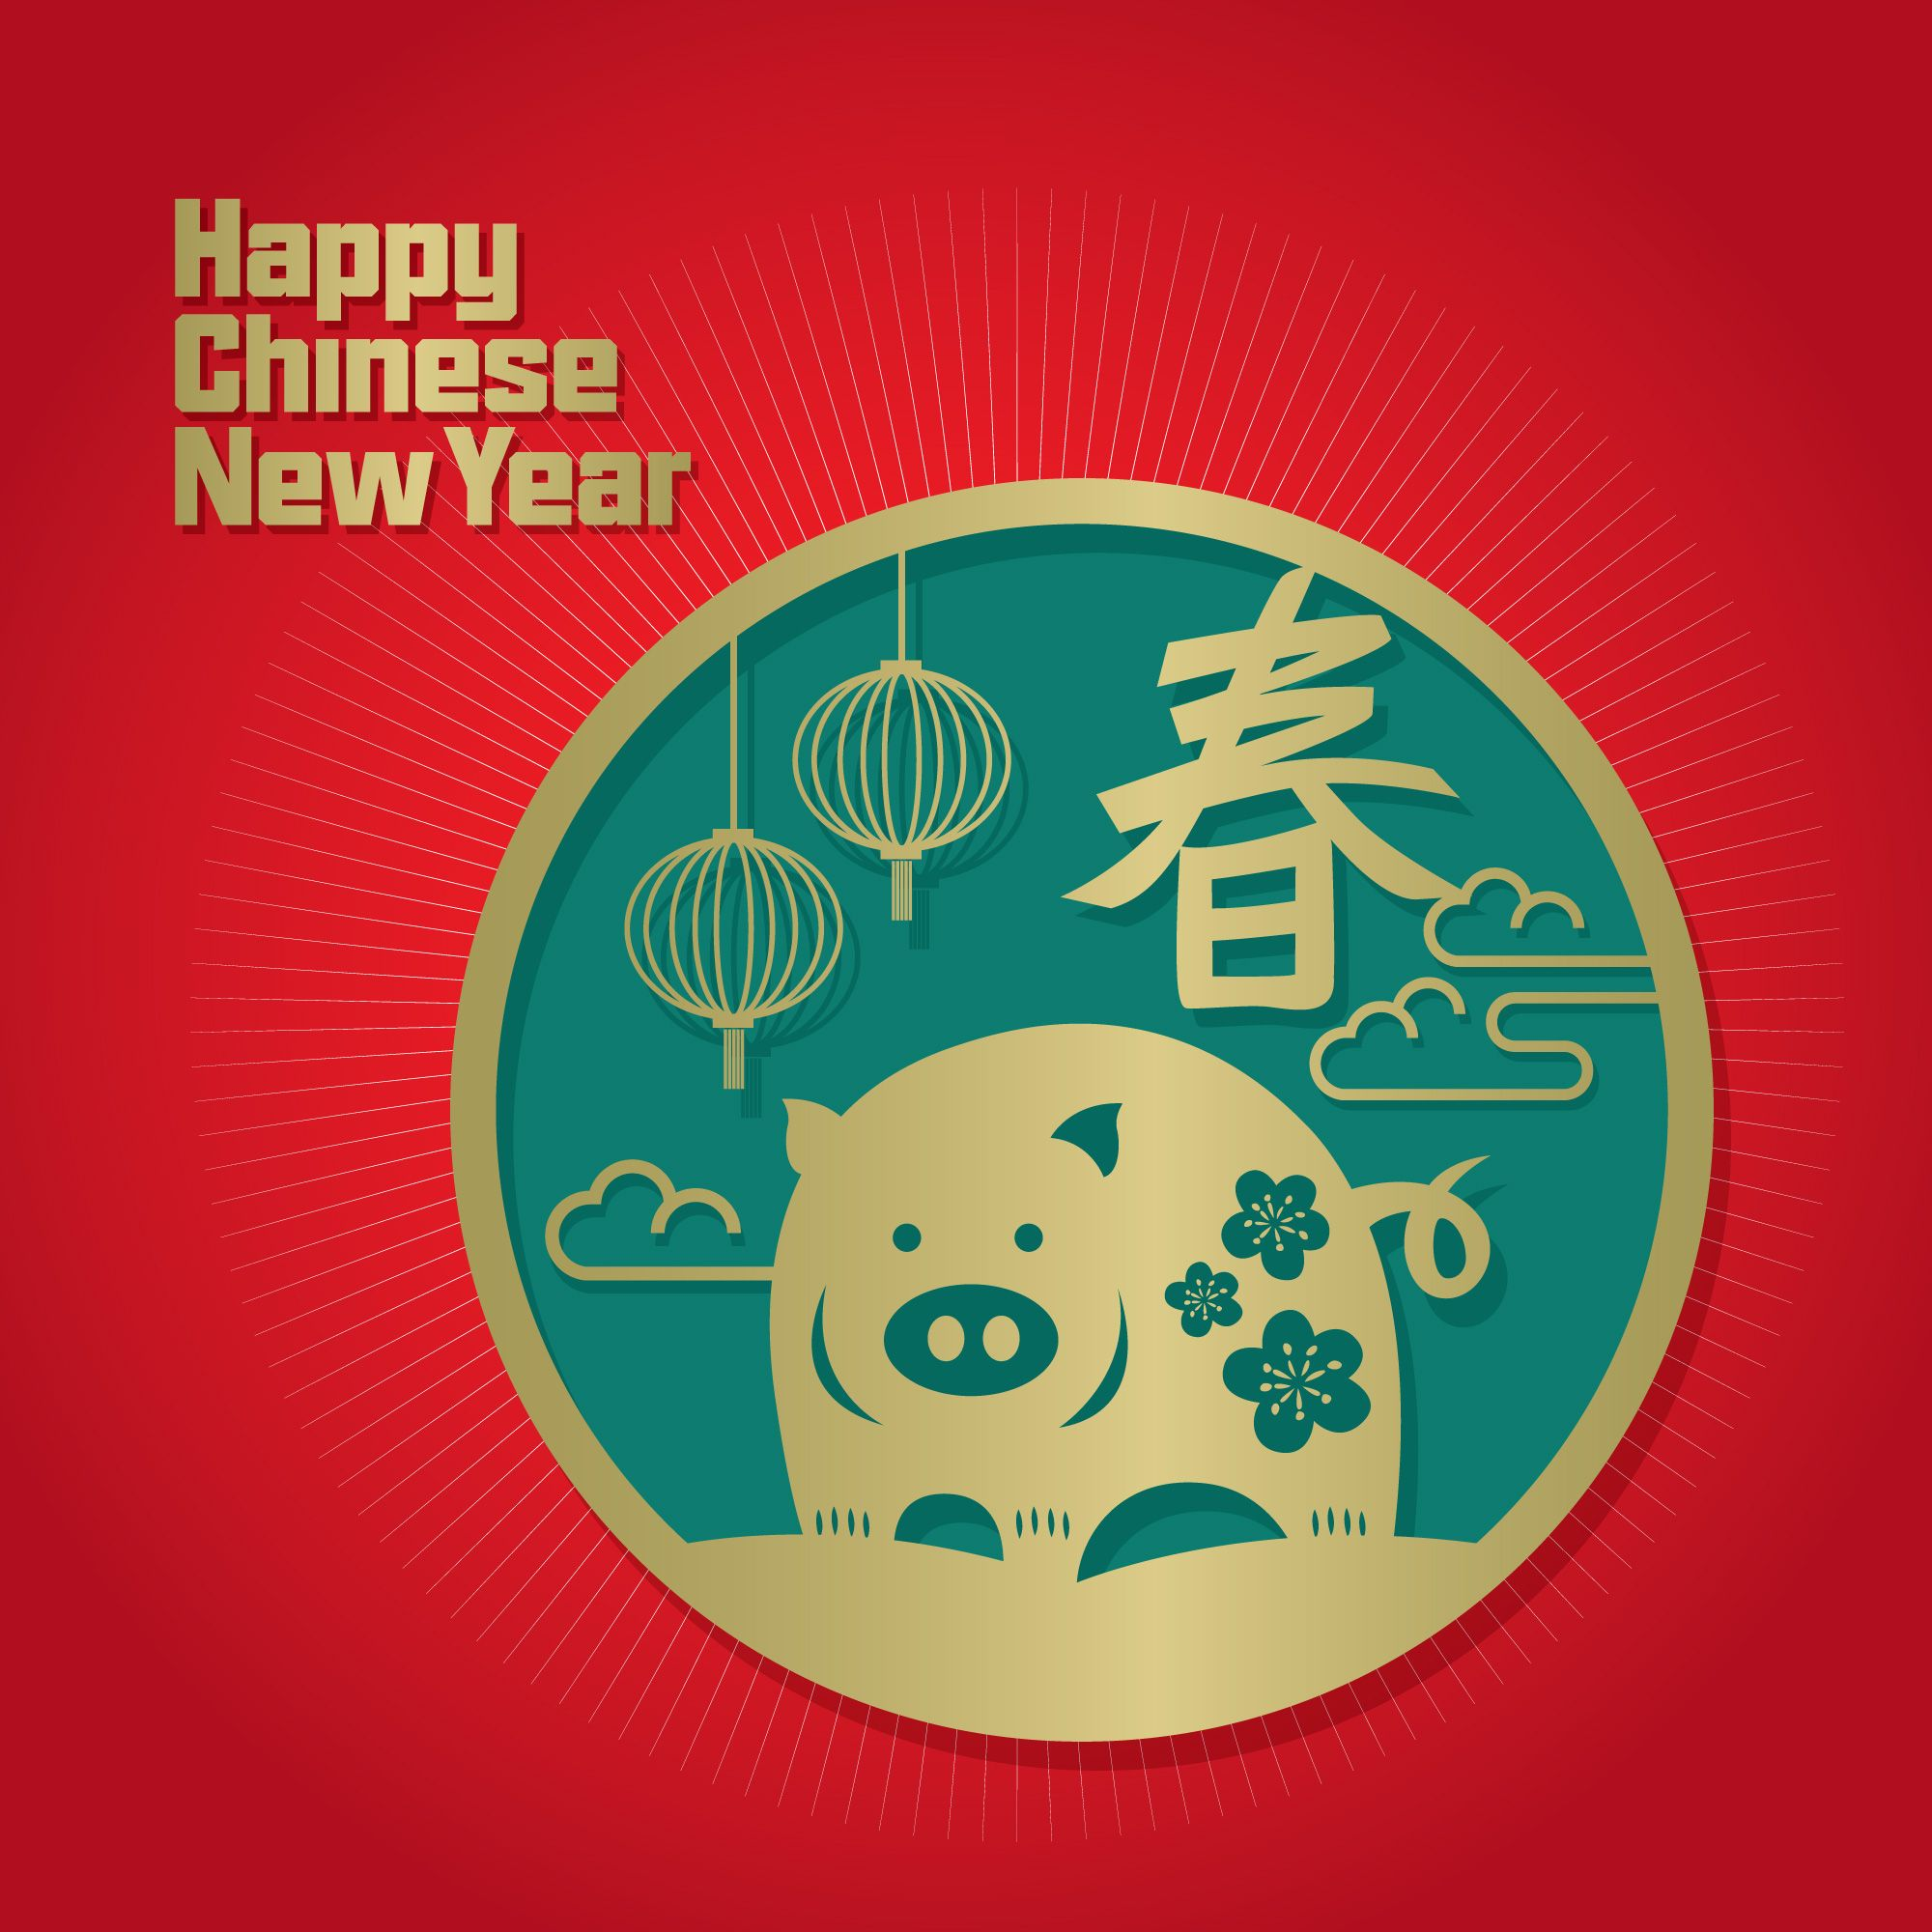 CNY 2019 ! Year of the pig. Happy chinese new year